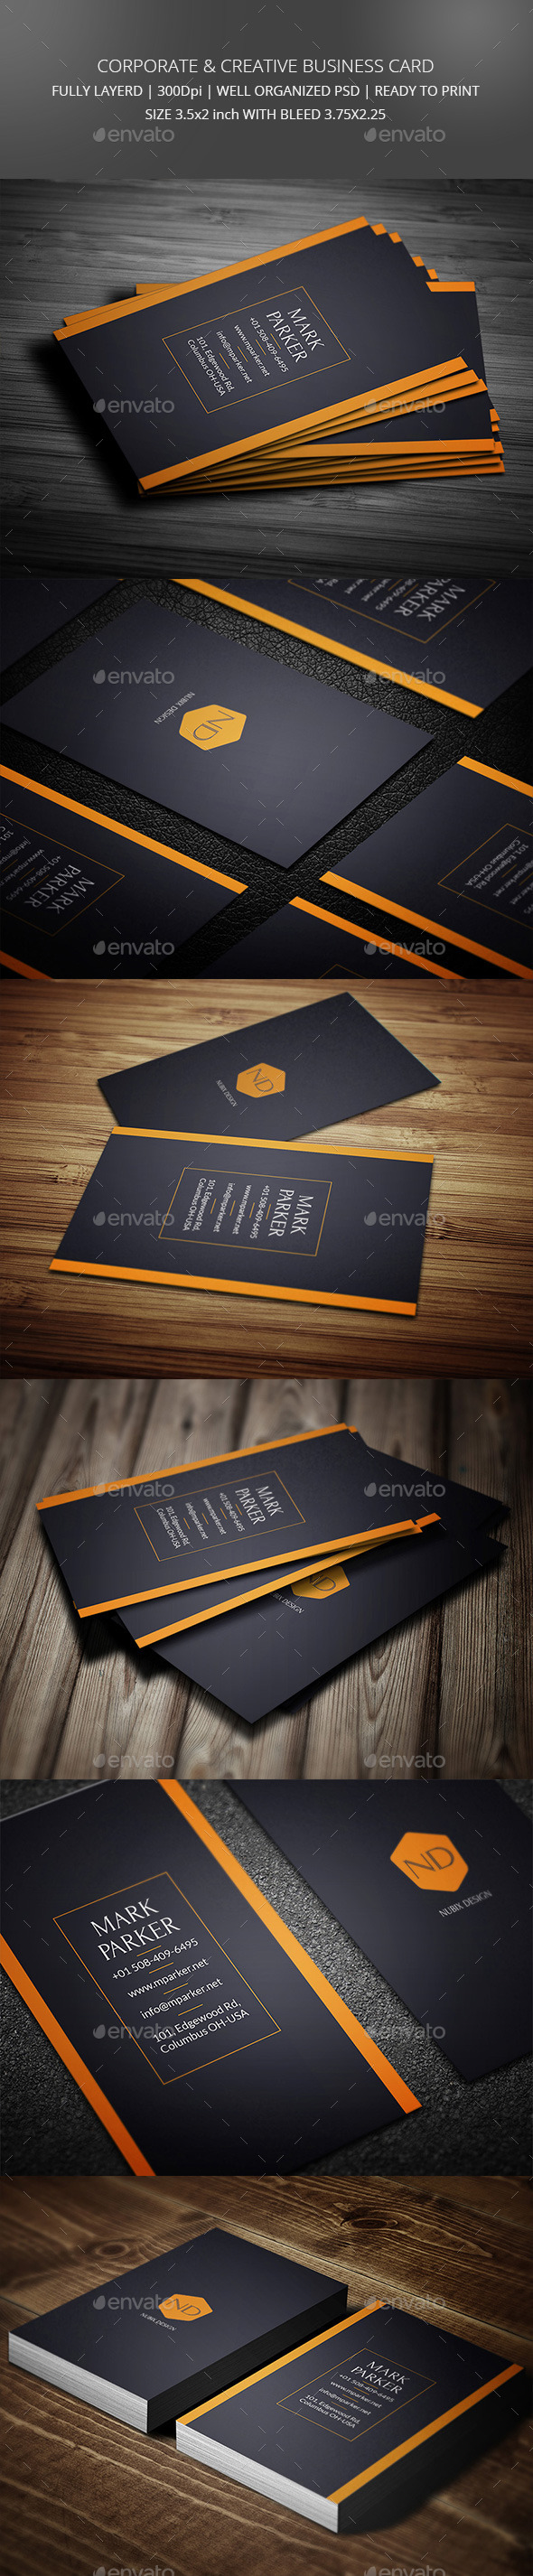 GraphicRiver Creative and Corporate Business Card 10841257